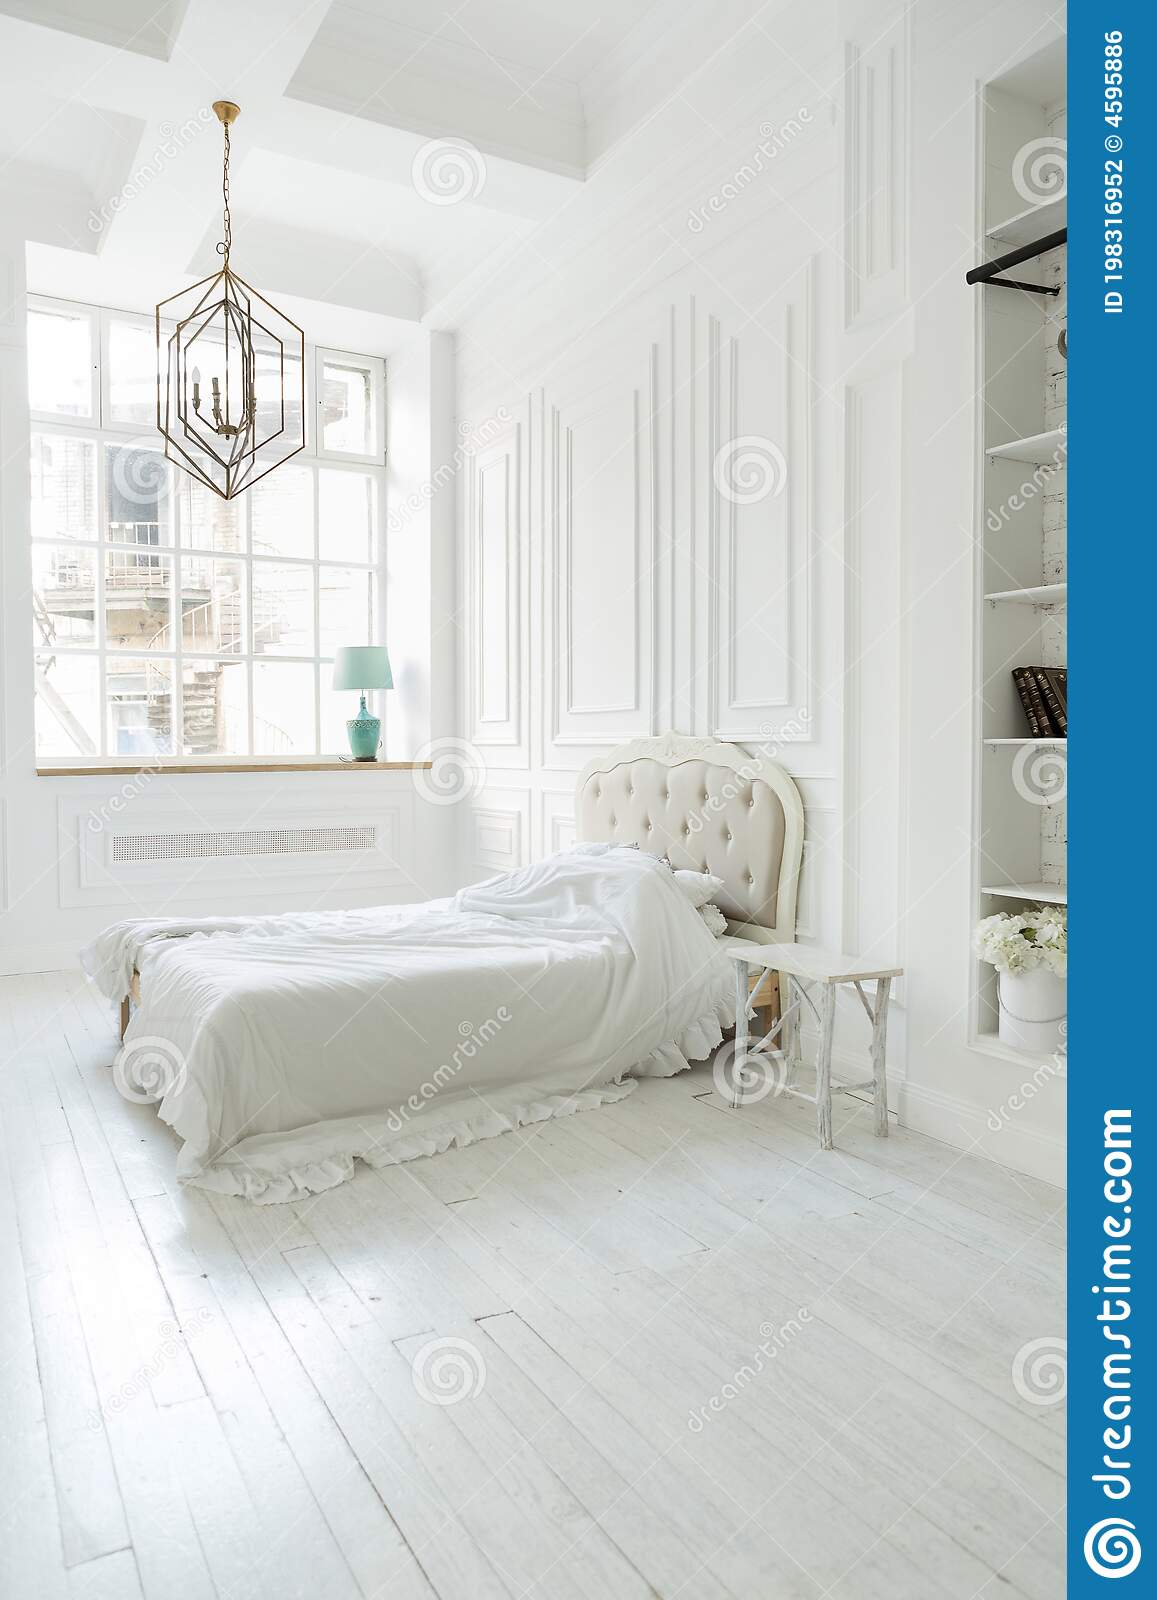 Luxury White Bedroom Interior Design In Soft Day Light With Elegant Classic Furniture Stock Photo Image Of Empty Contemporary 198316952